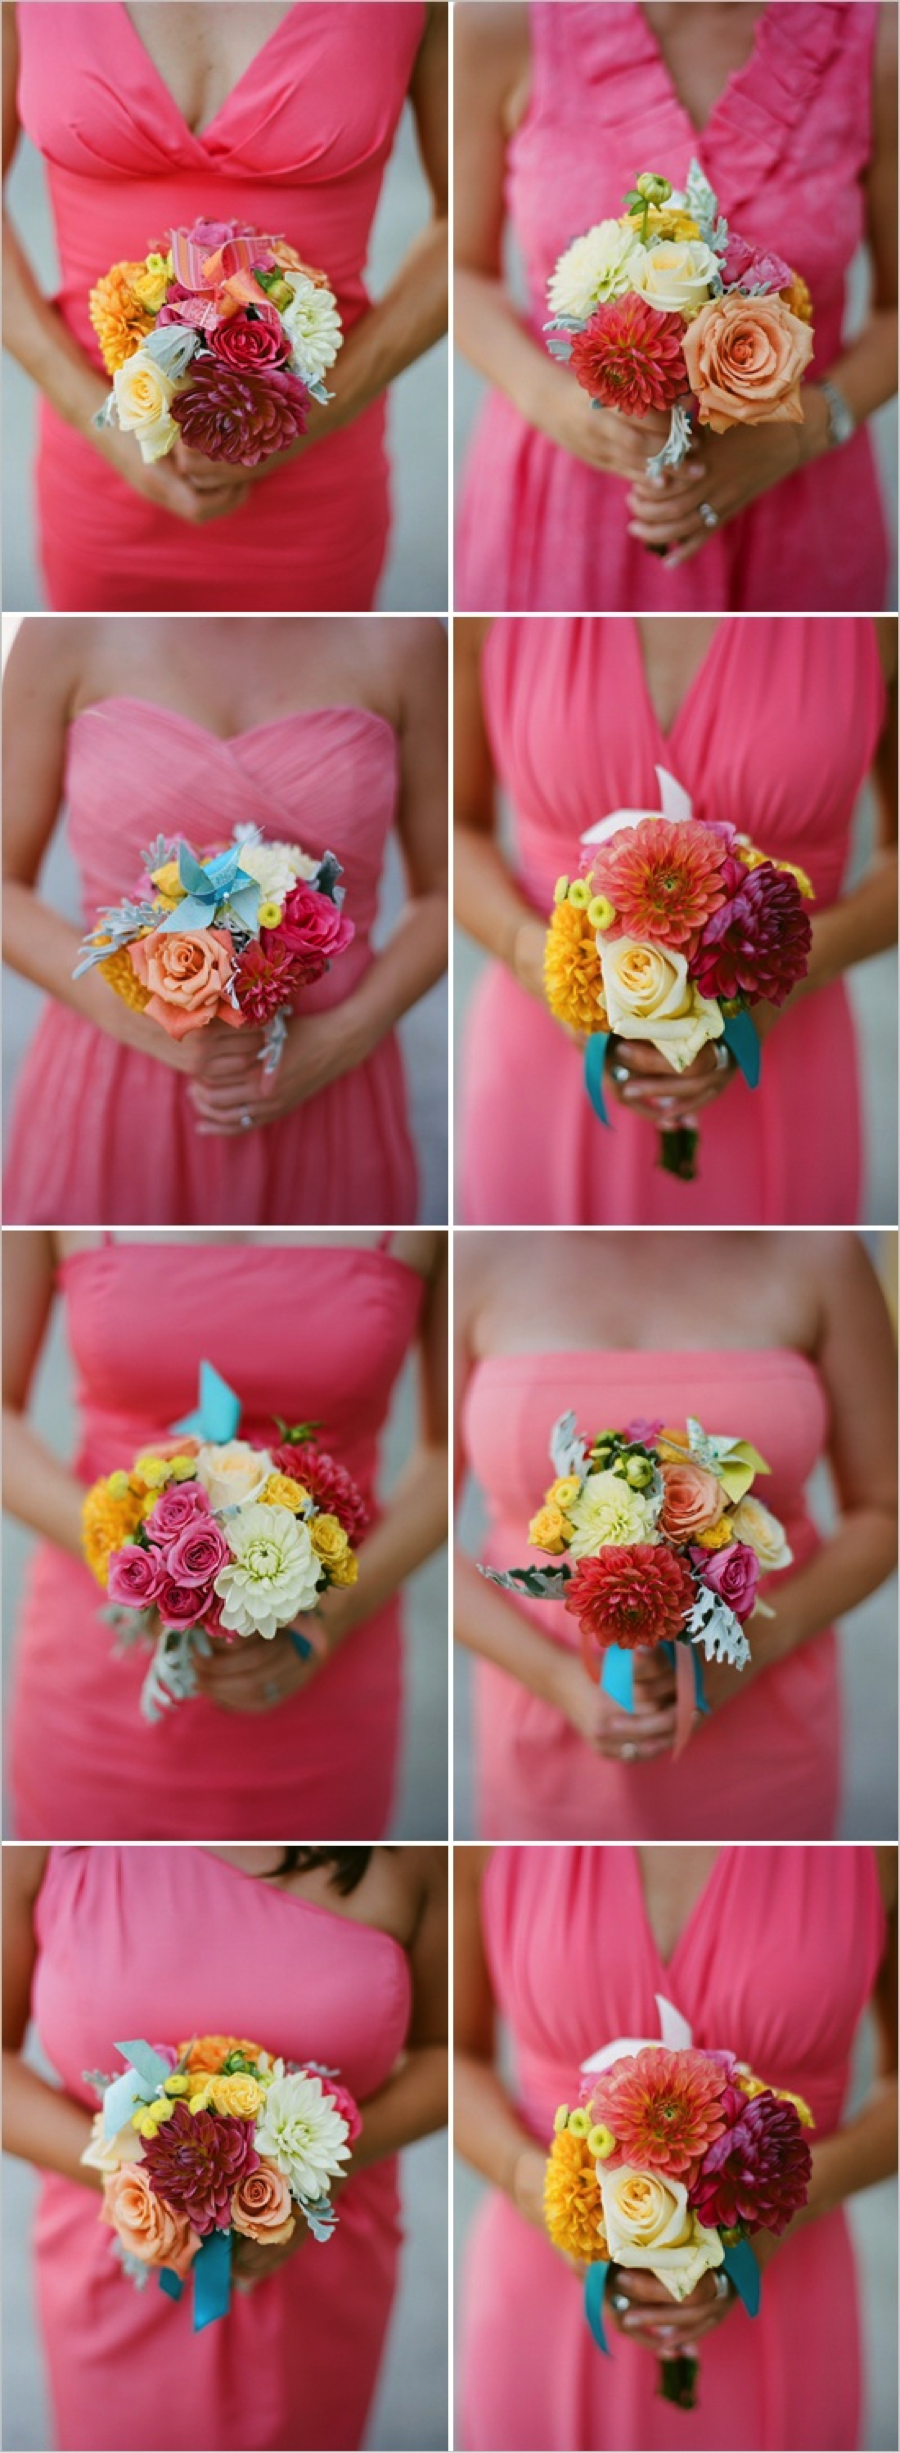 Bridesmaid bouquets arranged by Brocade Designs, a StudioWed vendor.